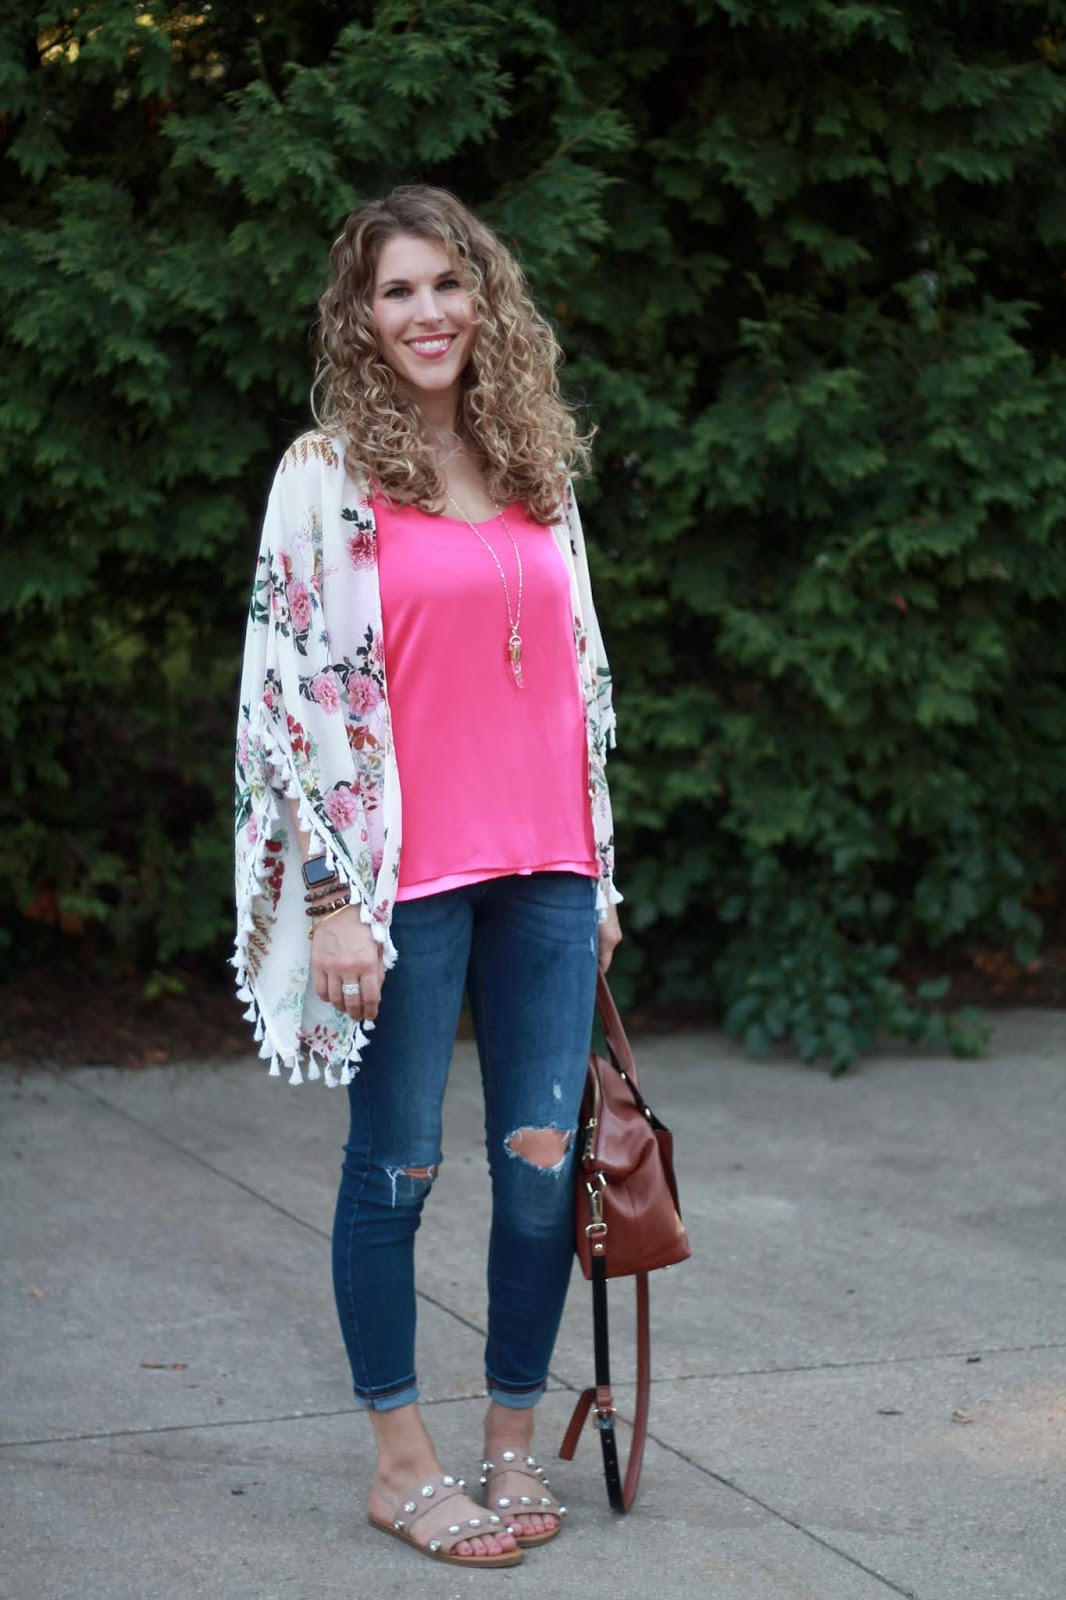 pink cami, white floral kimono, distressed jeans, crystal studded sandals, Kate Spade cognac cross body bag